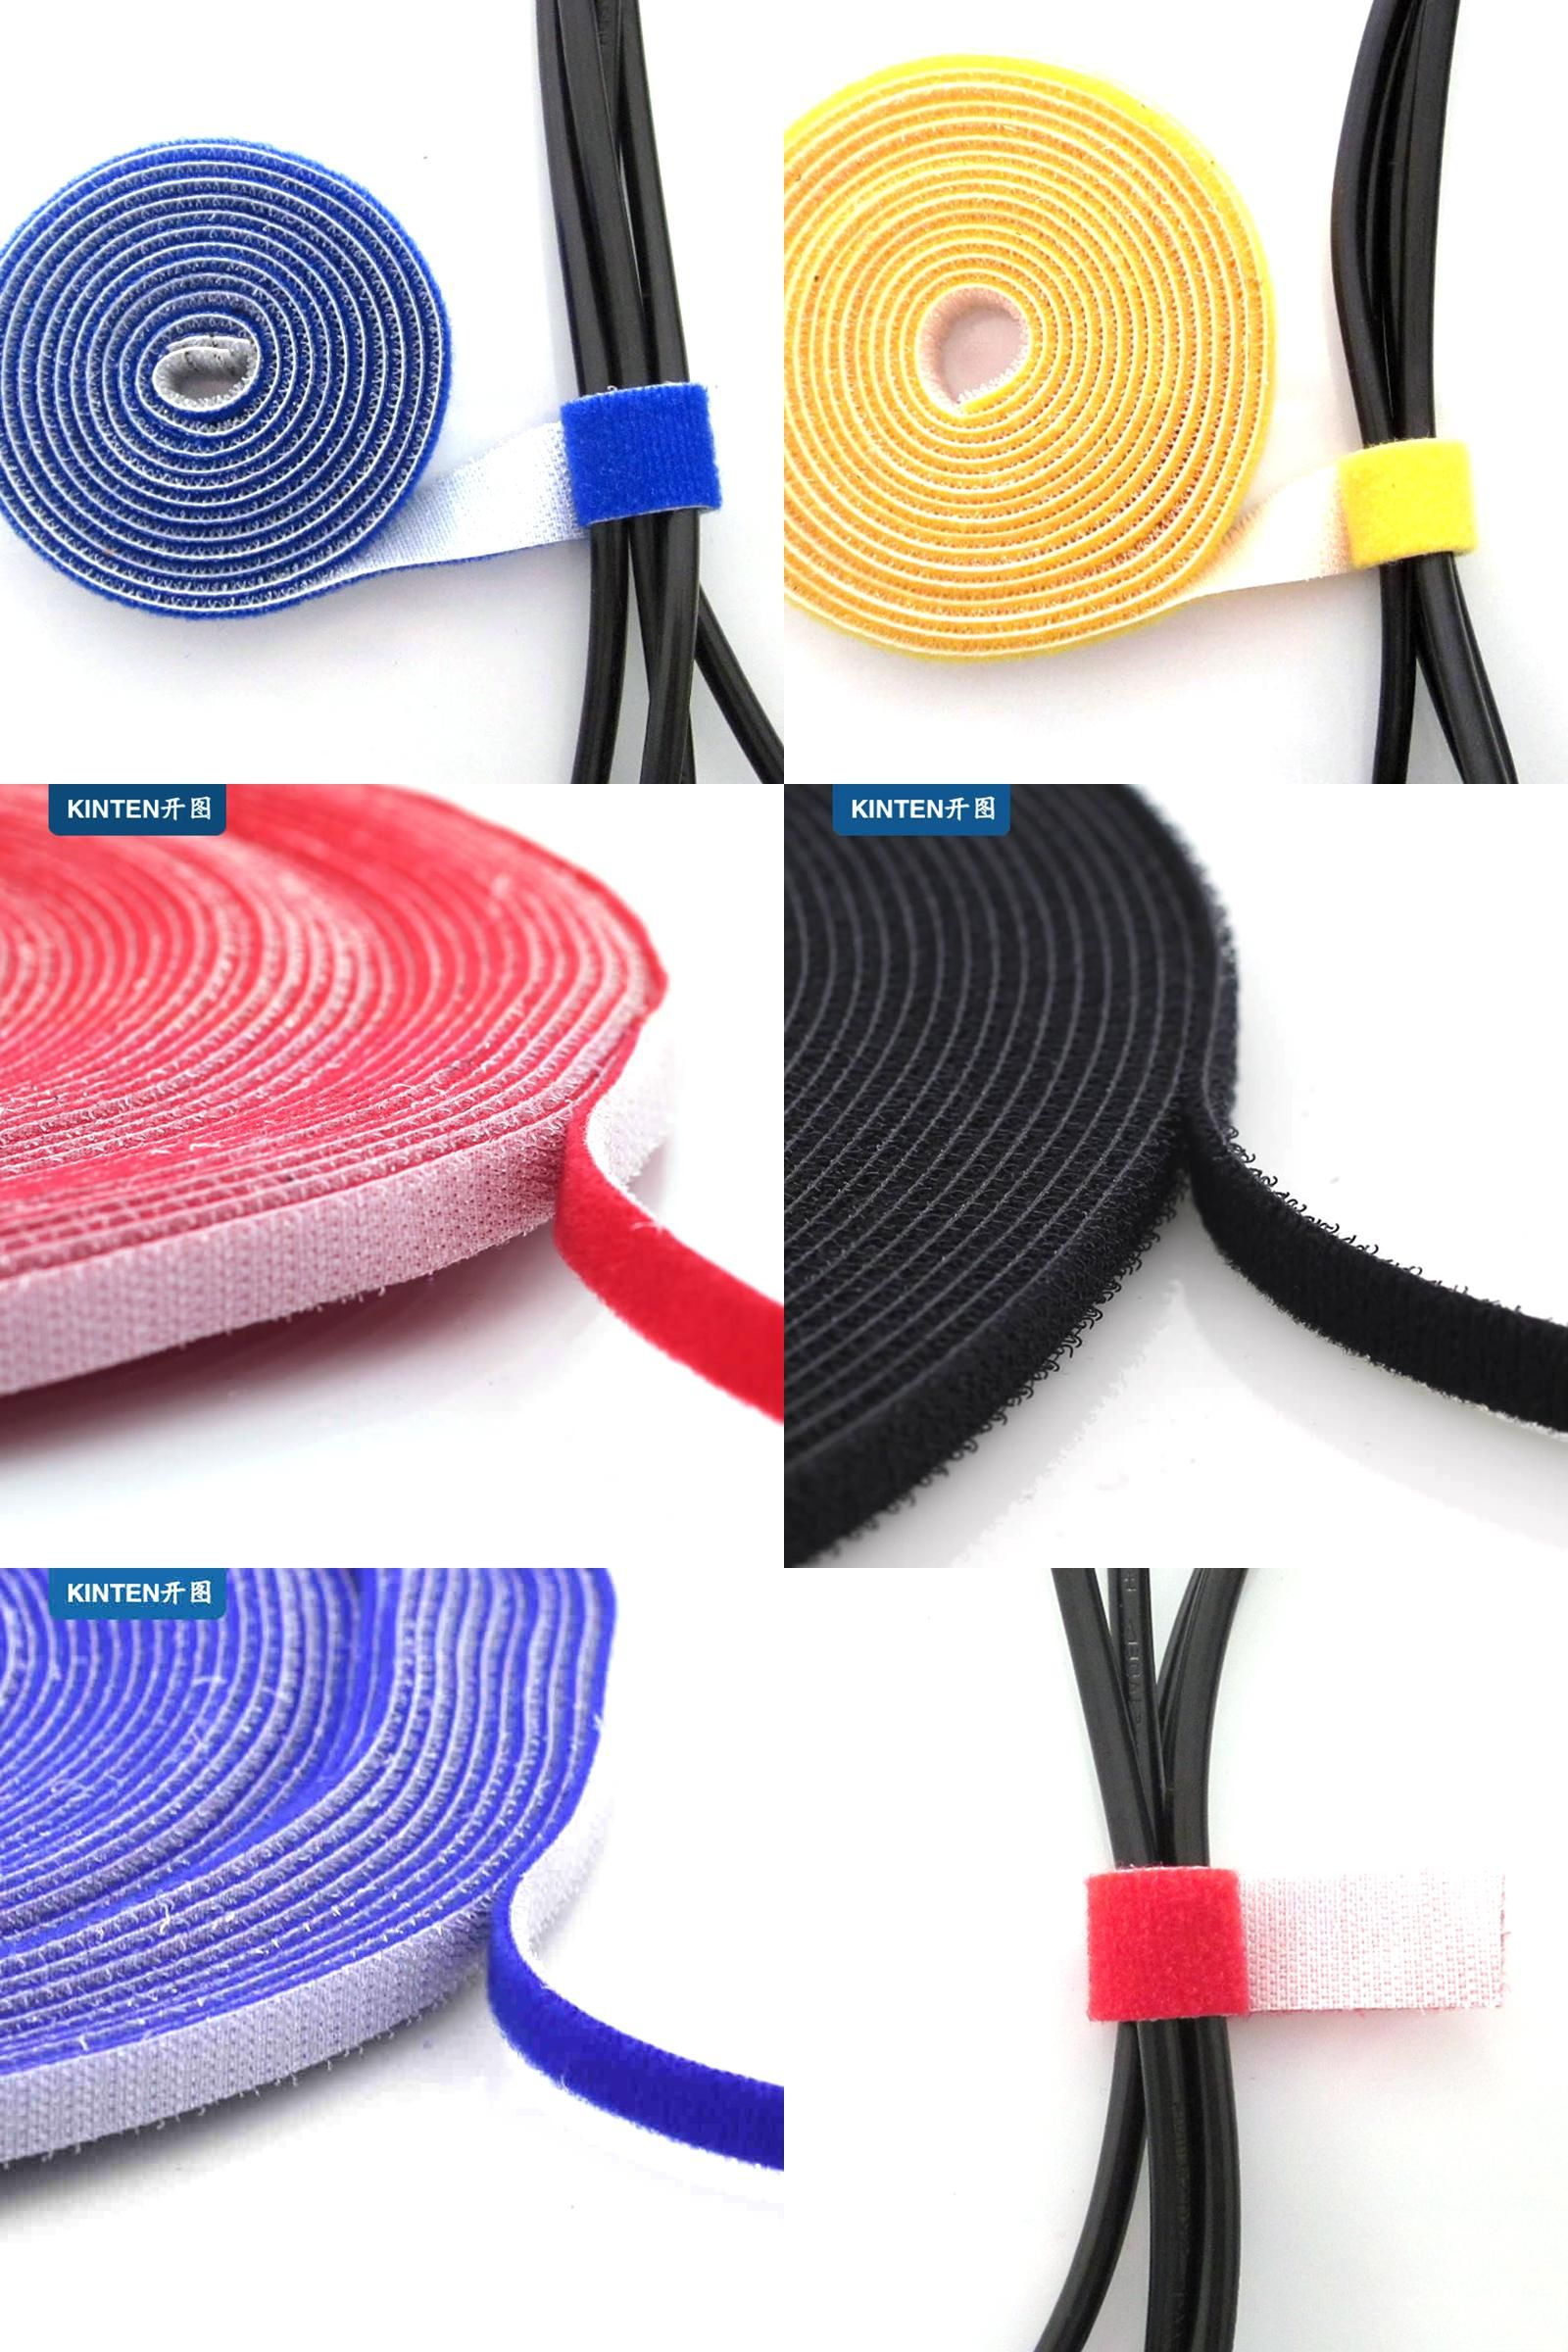 Visit To Buy 4 Pcs 1 Meter Cable Ties Red Yellow Blue Black Four Wiring Harness Zip